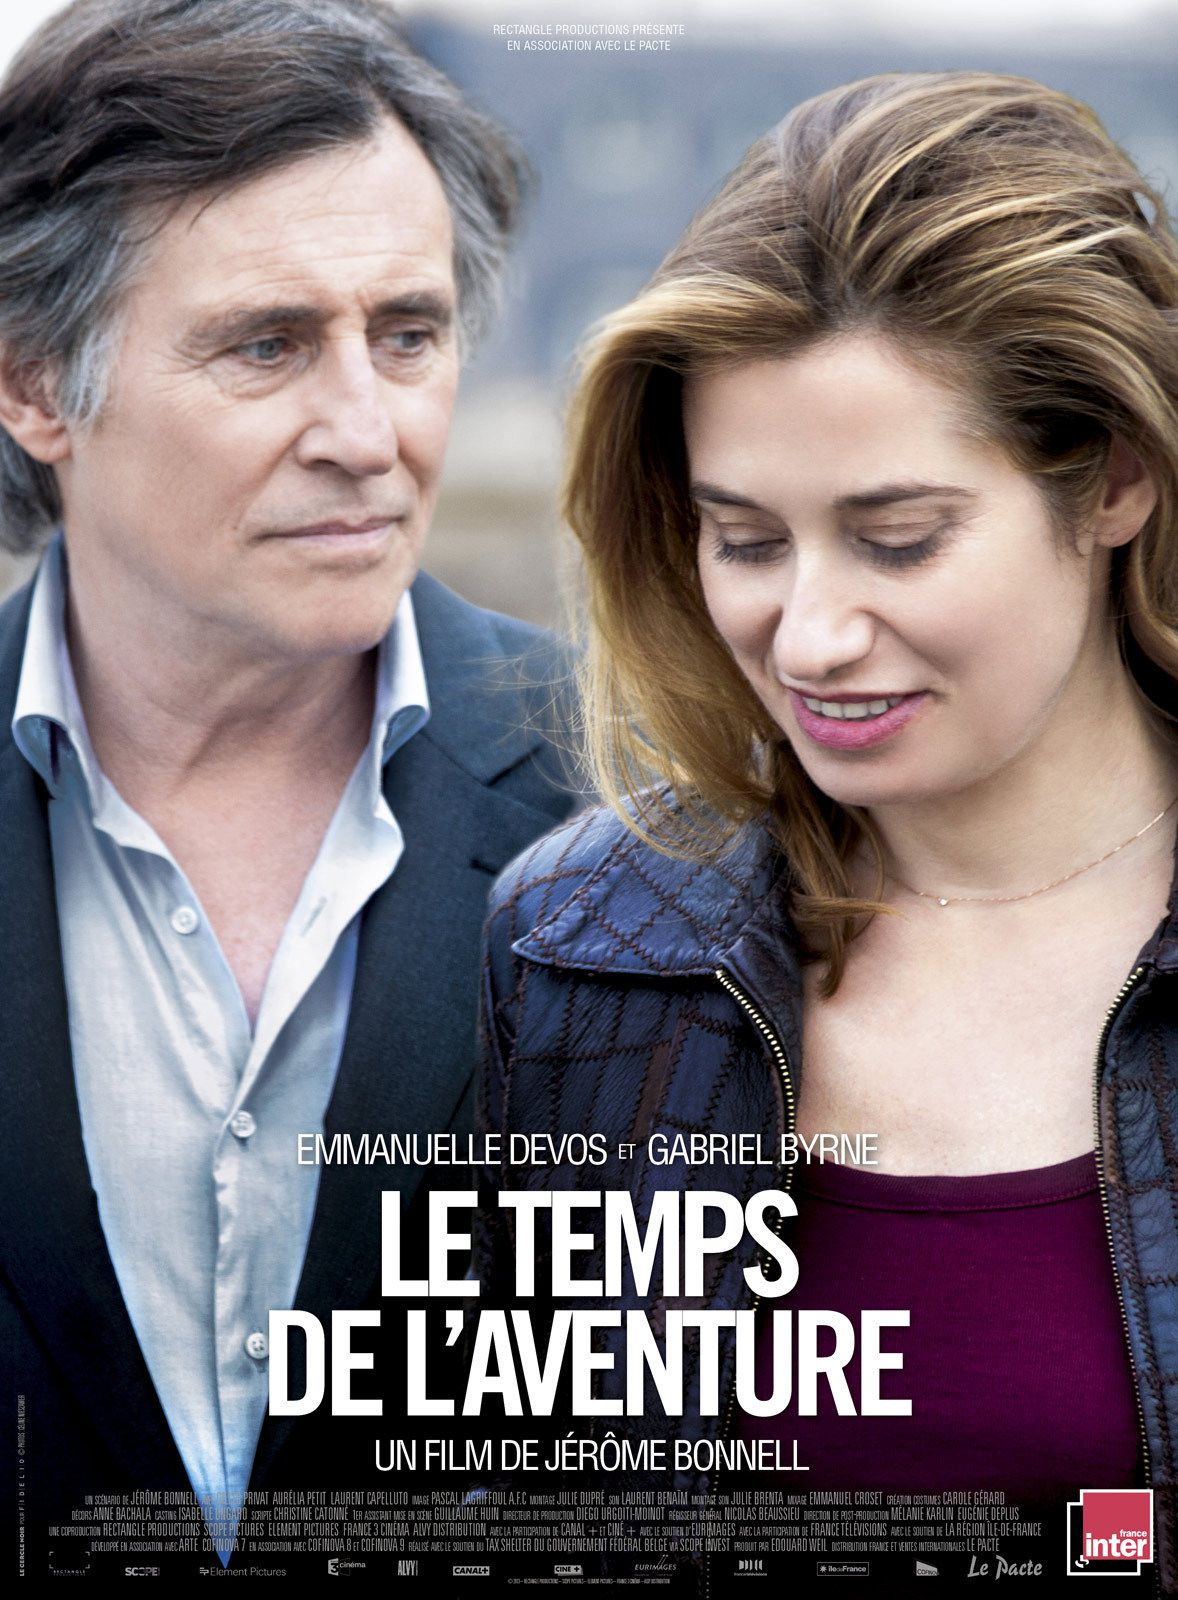 Le Temps de l'aventure - Film (2013) streaming VF gratuit complet